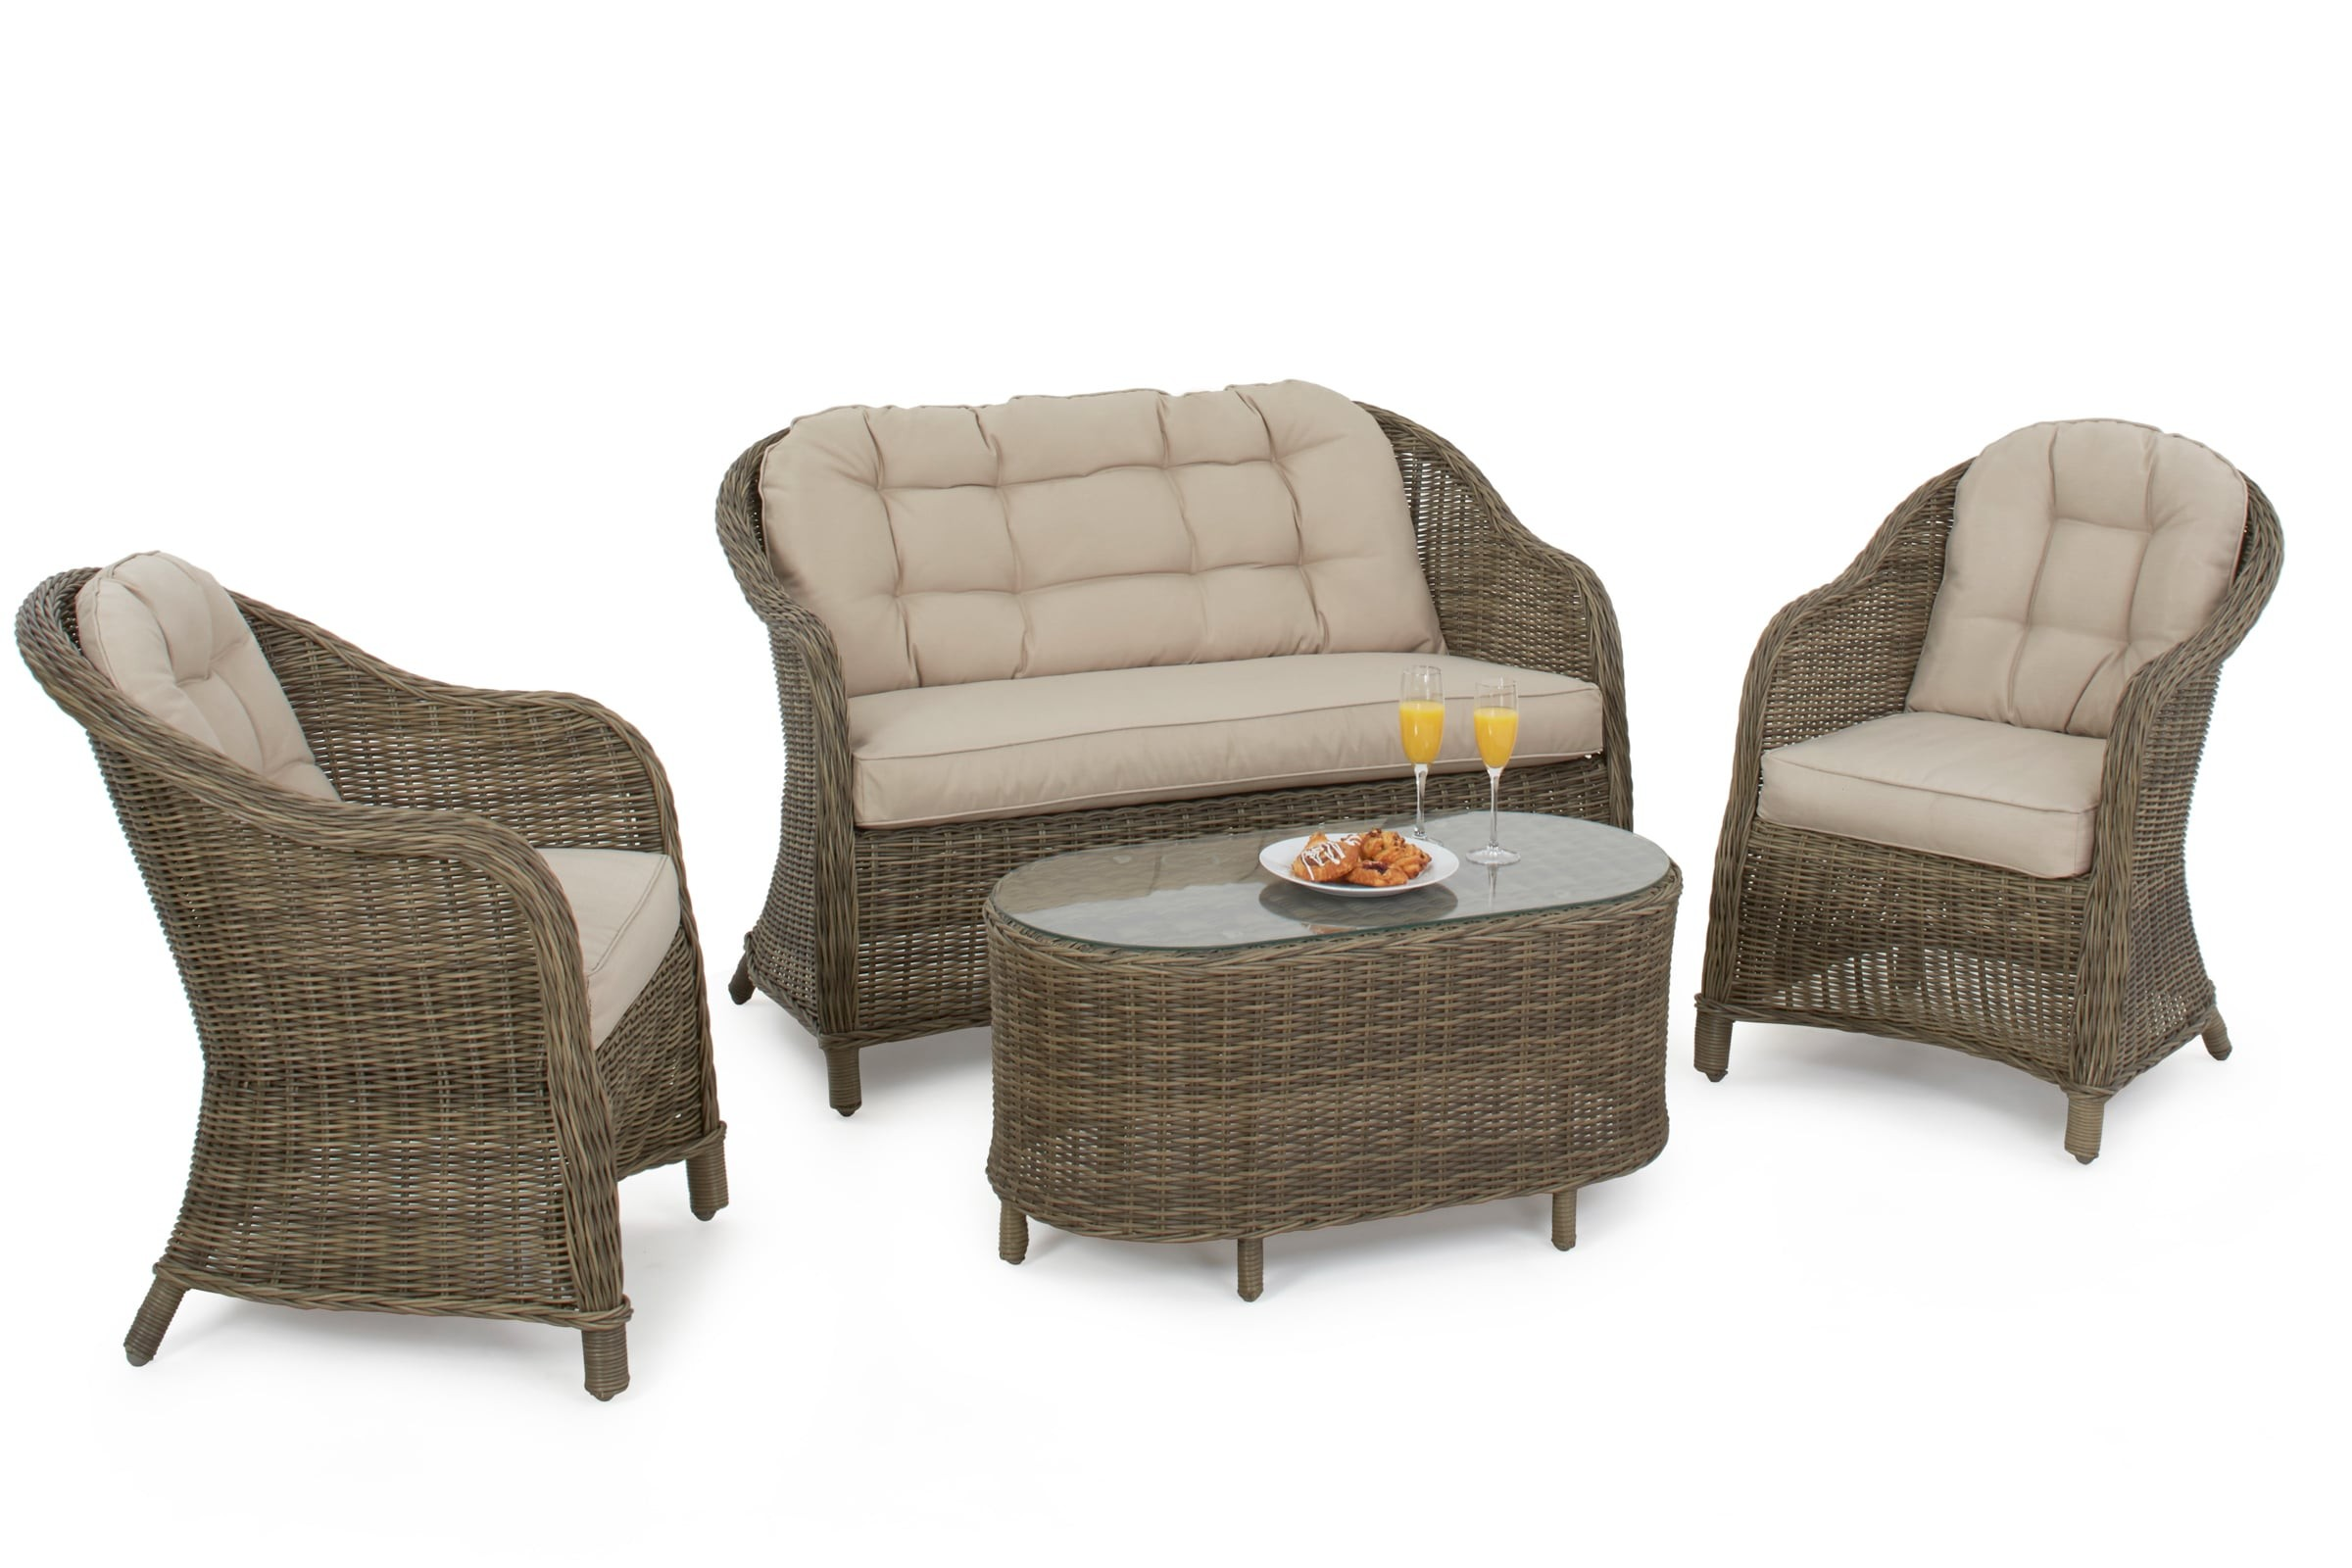 maze rattan winchester round high back sofa set outdoor furniture set. Black Bedroom Furniture Sets. Home Design Ideas